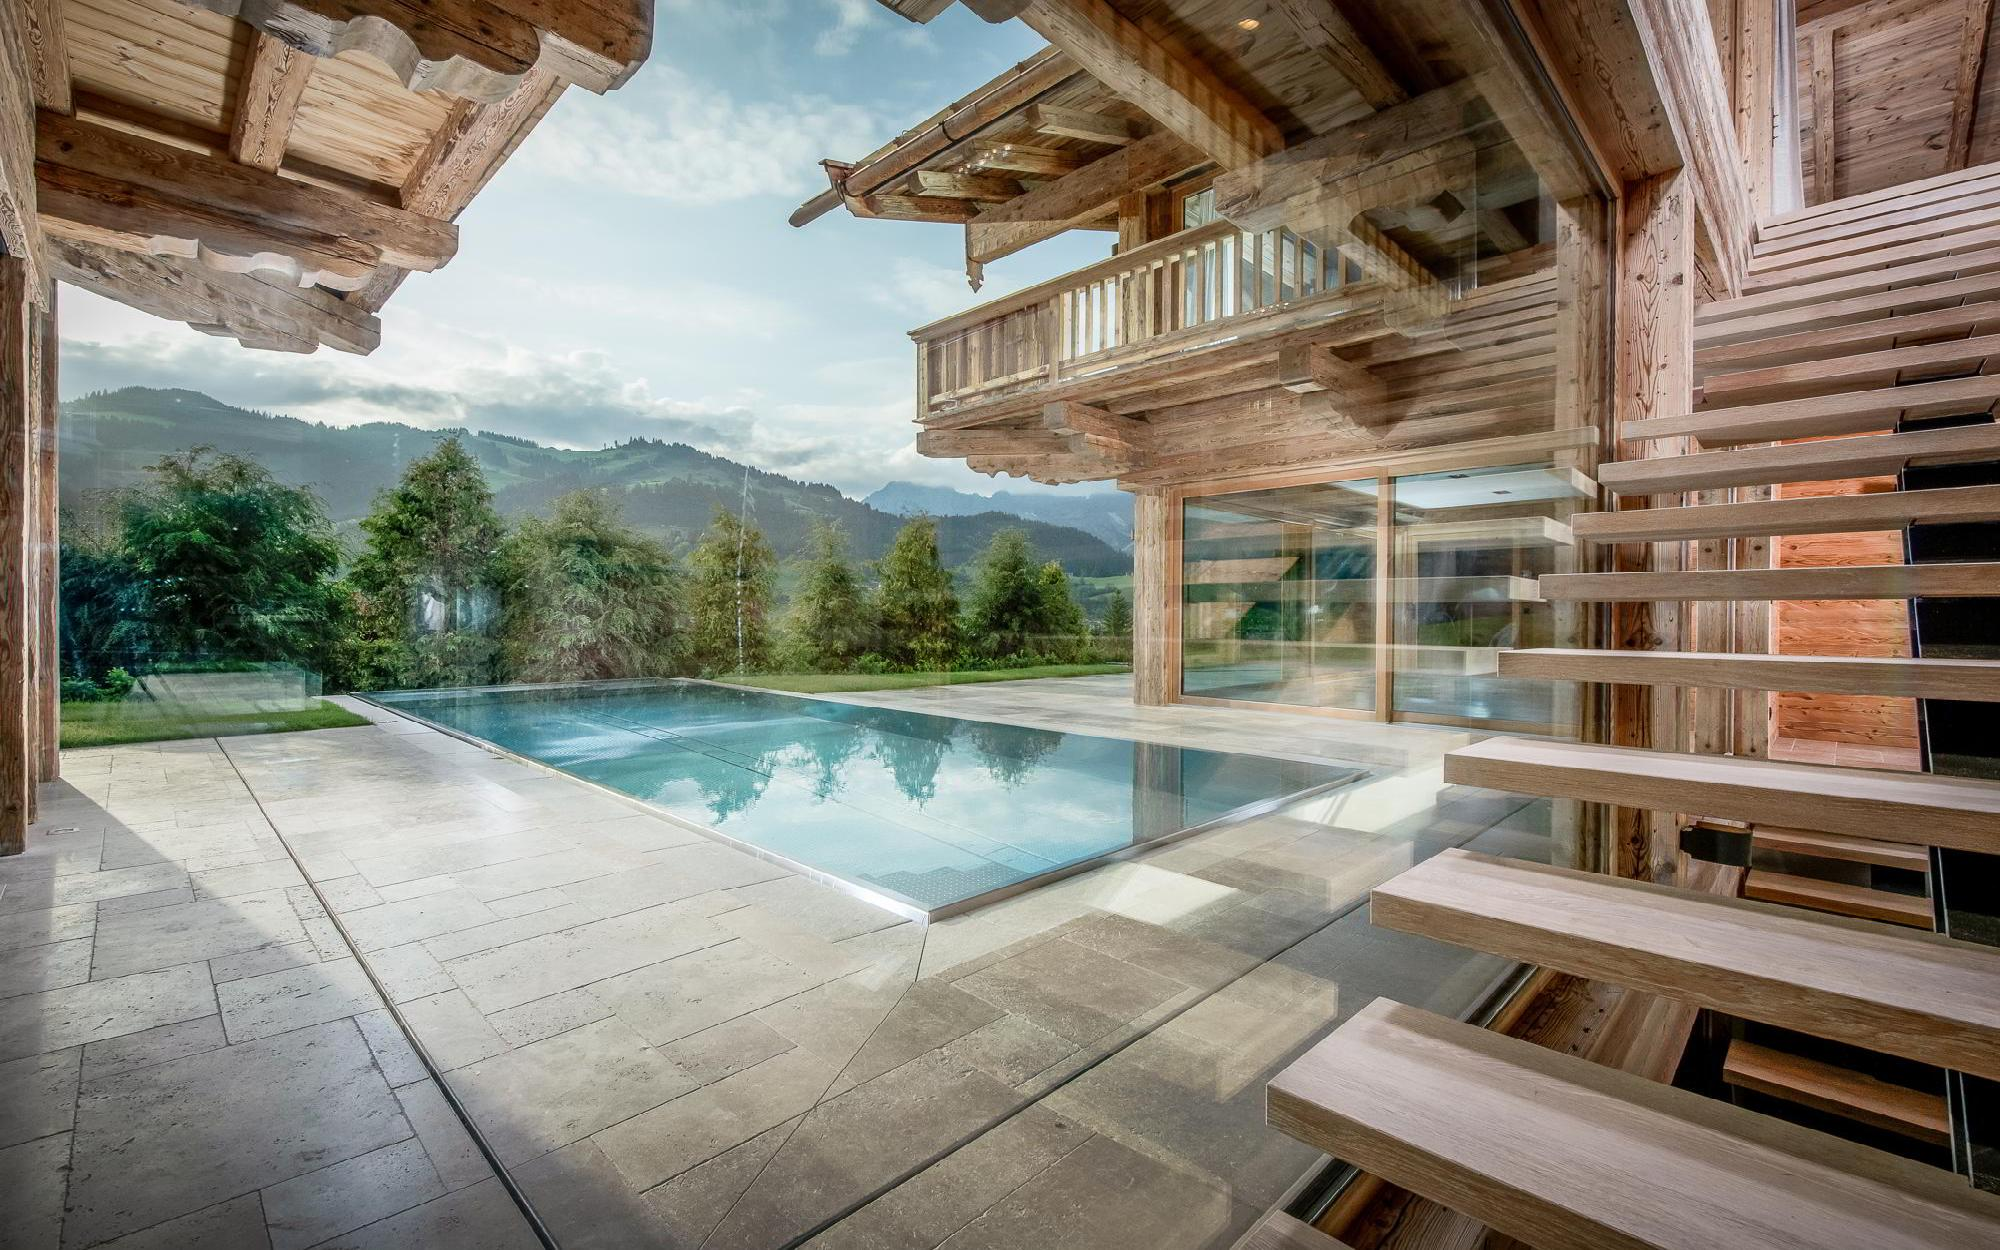 Luxury Designer Chalet in famous Alpine region for Sale - Austria - Tirol